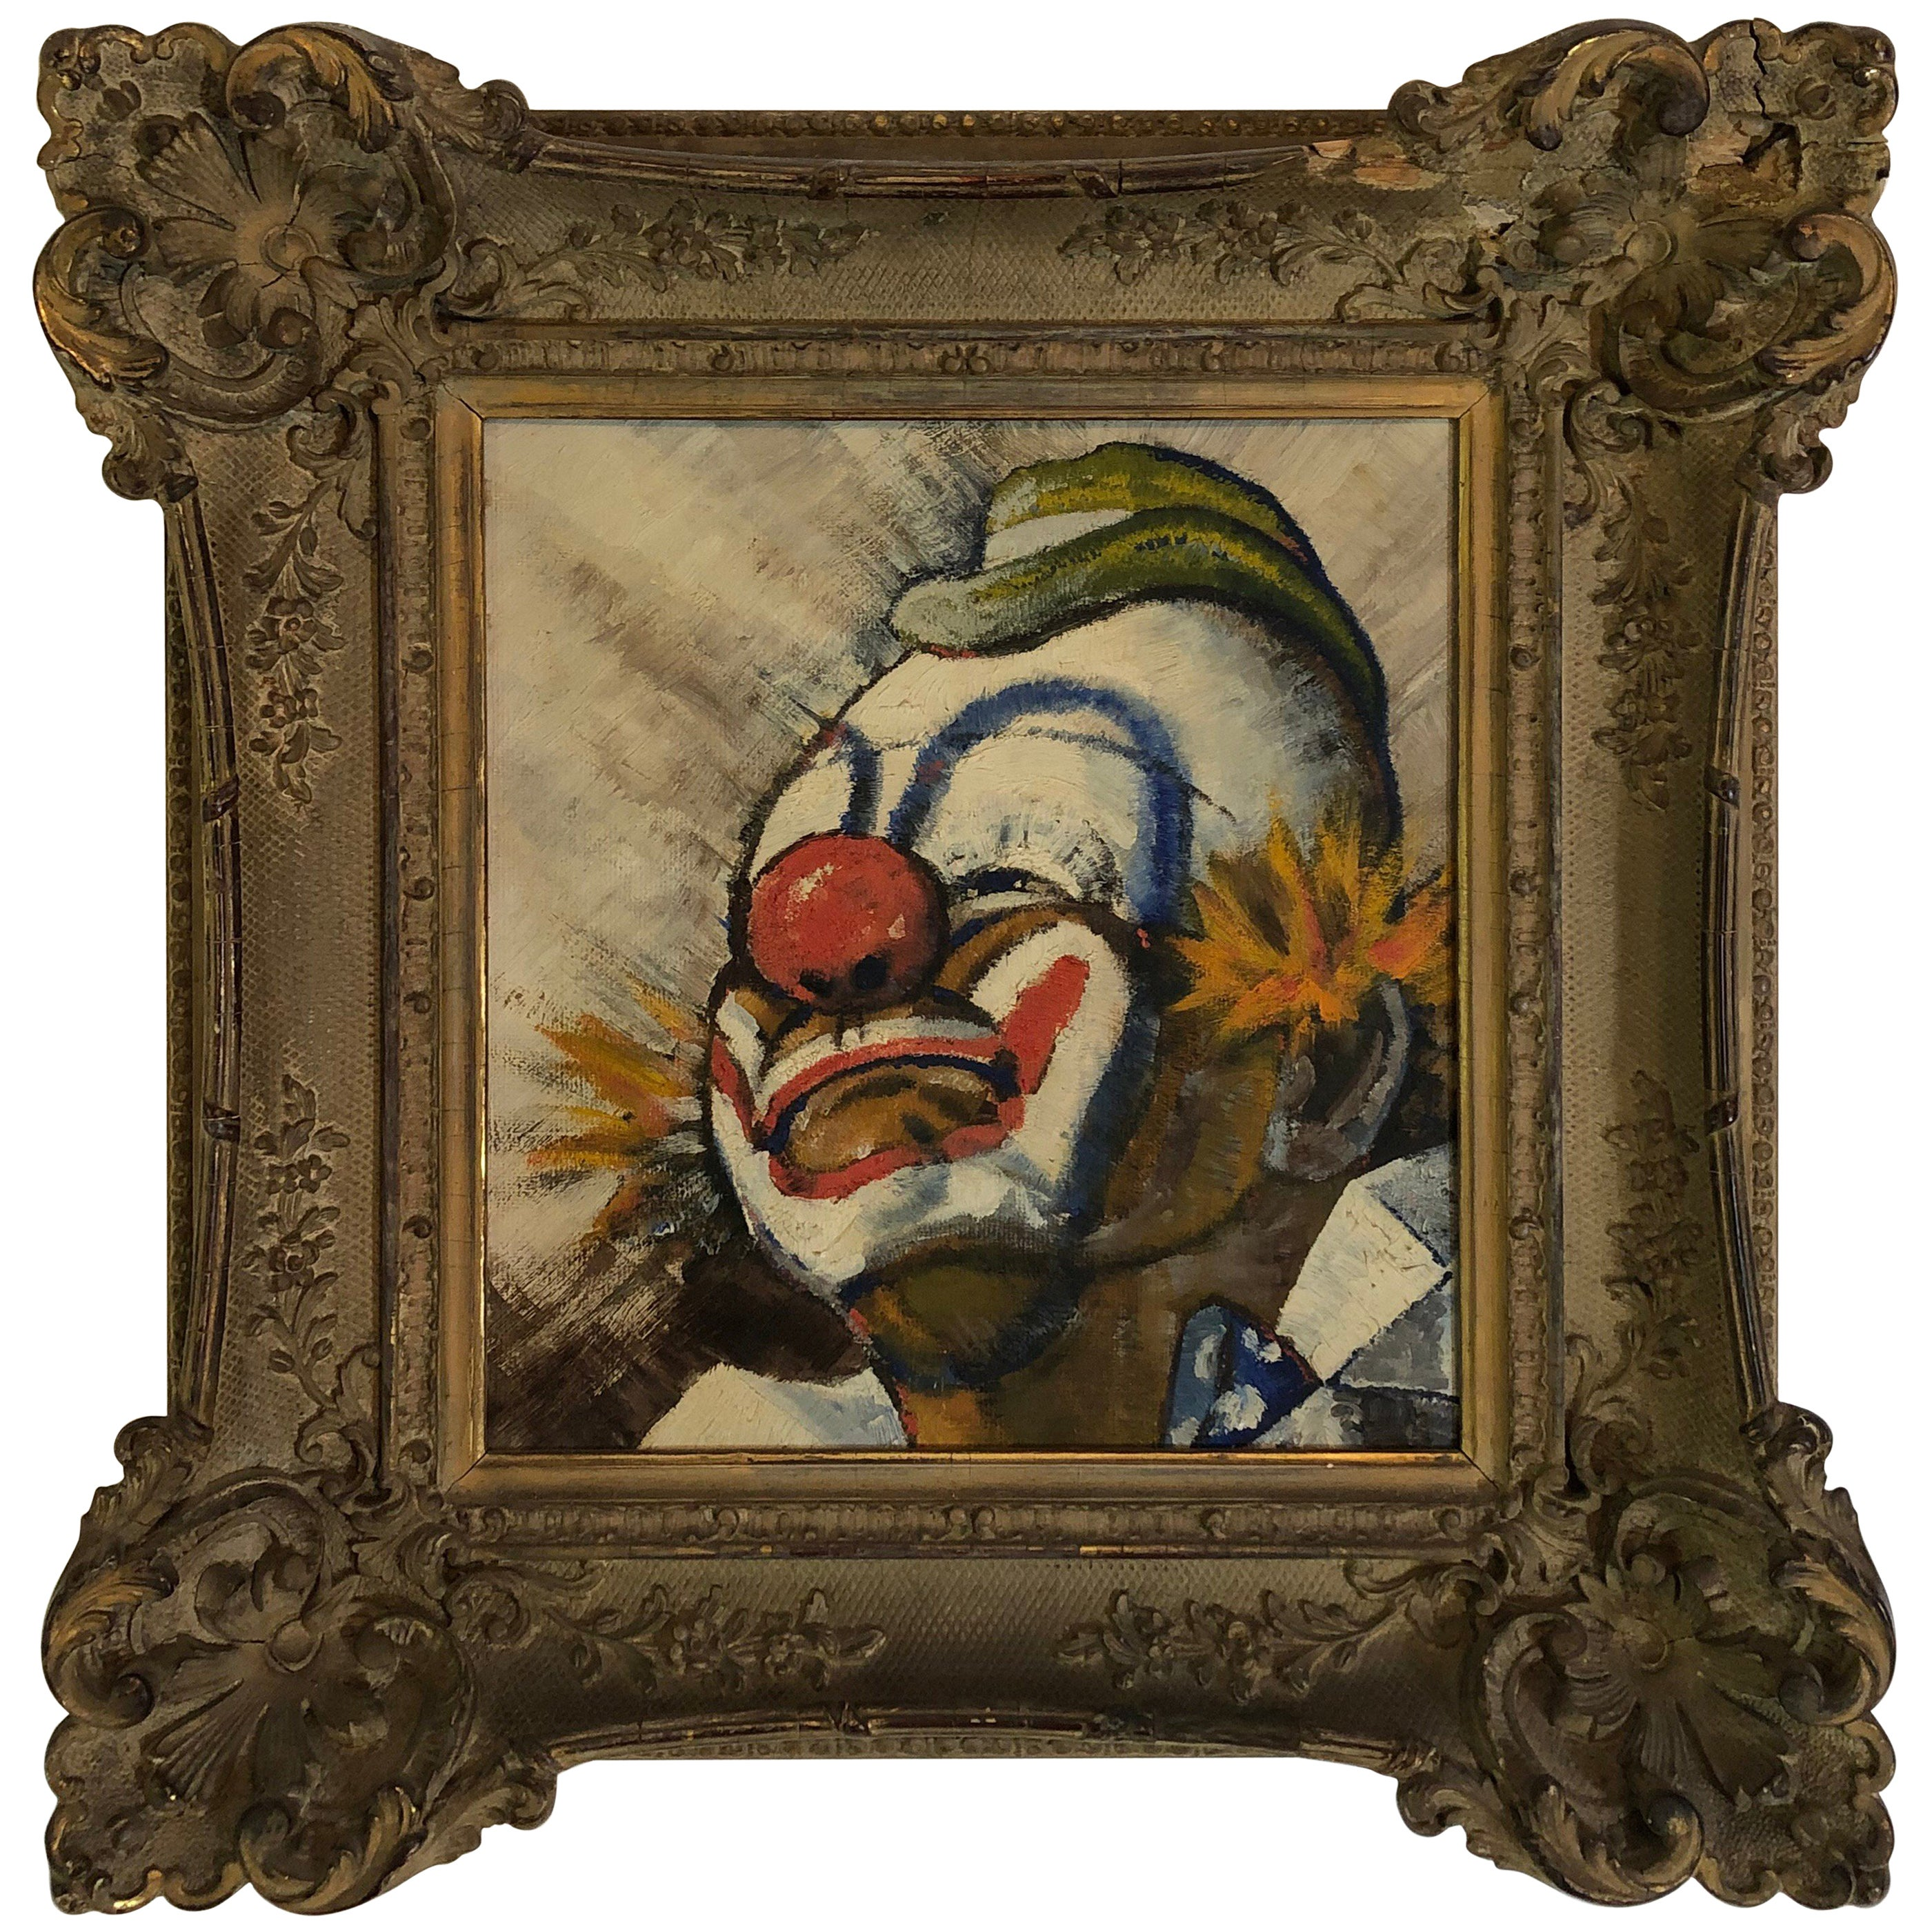 Early 20th Century Painting of a Clown in Antique Frame